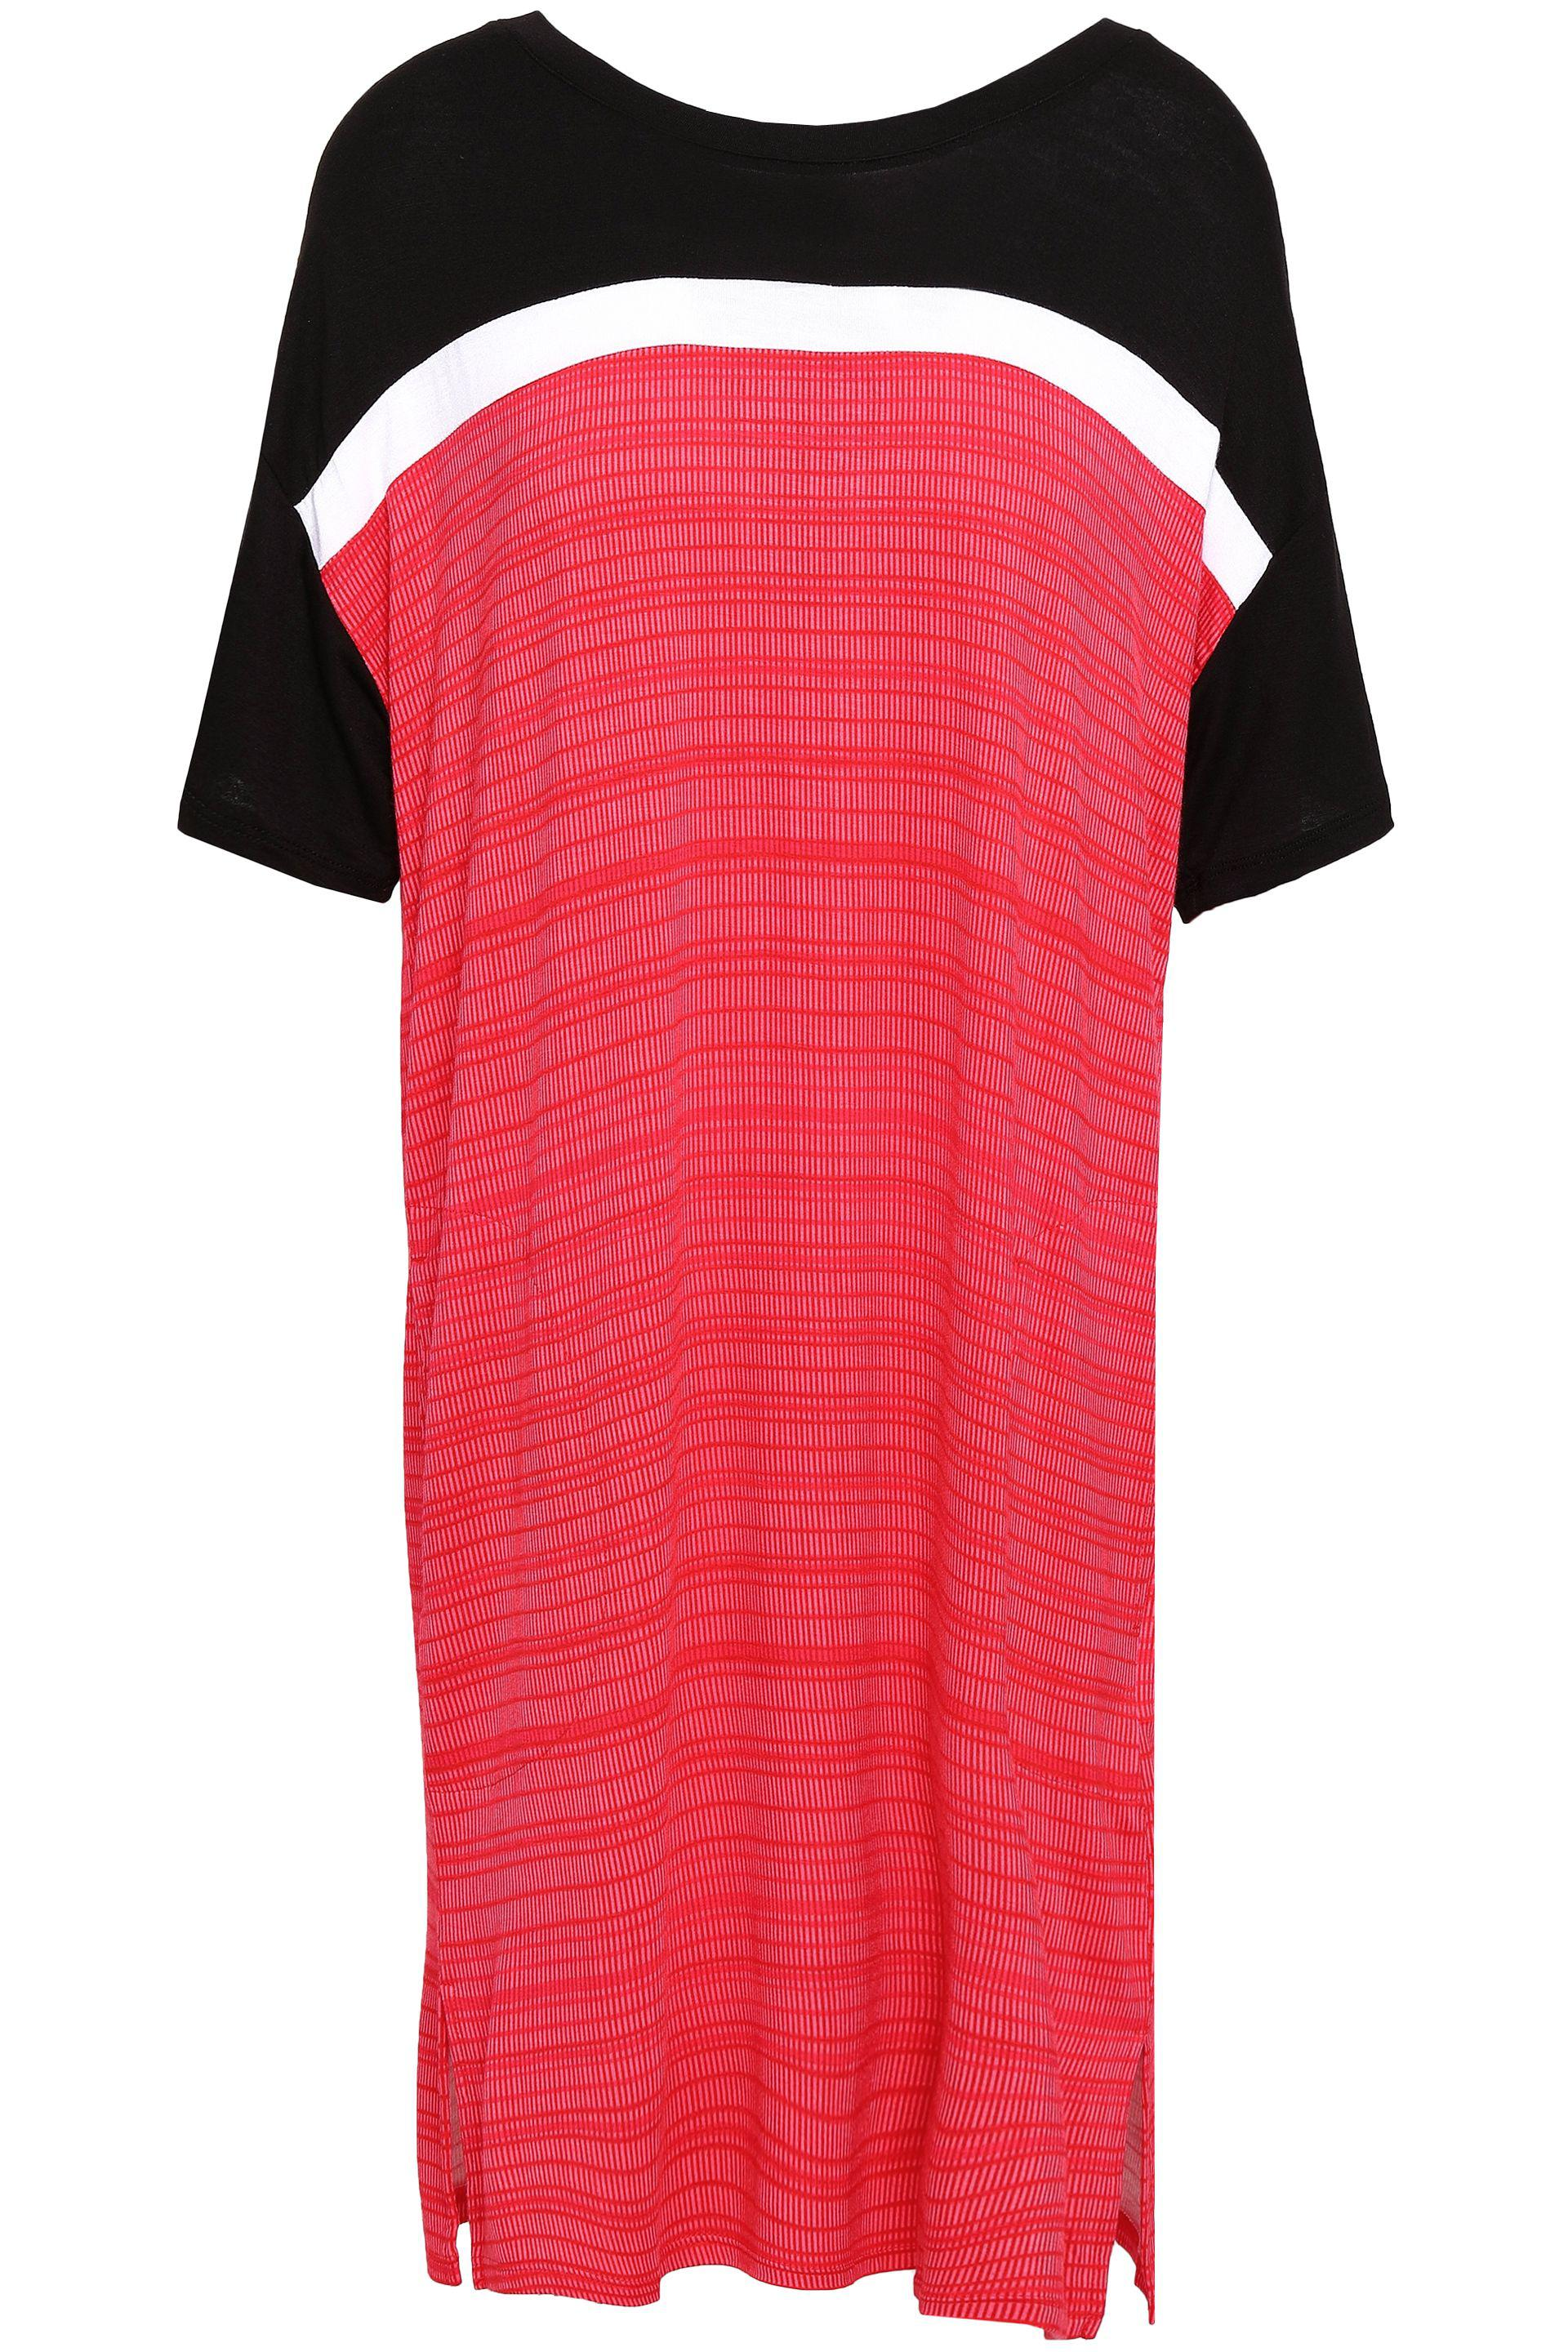 c24194cff6 Dkny Printed Jersey Nightshirt in Red - Lyst